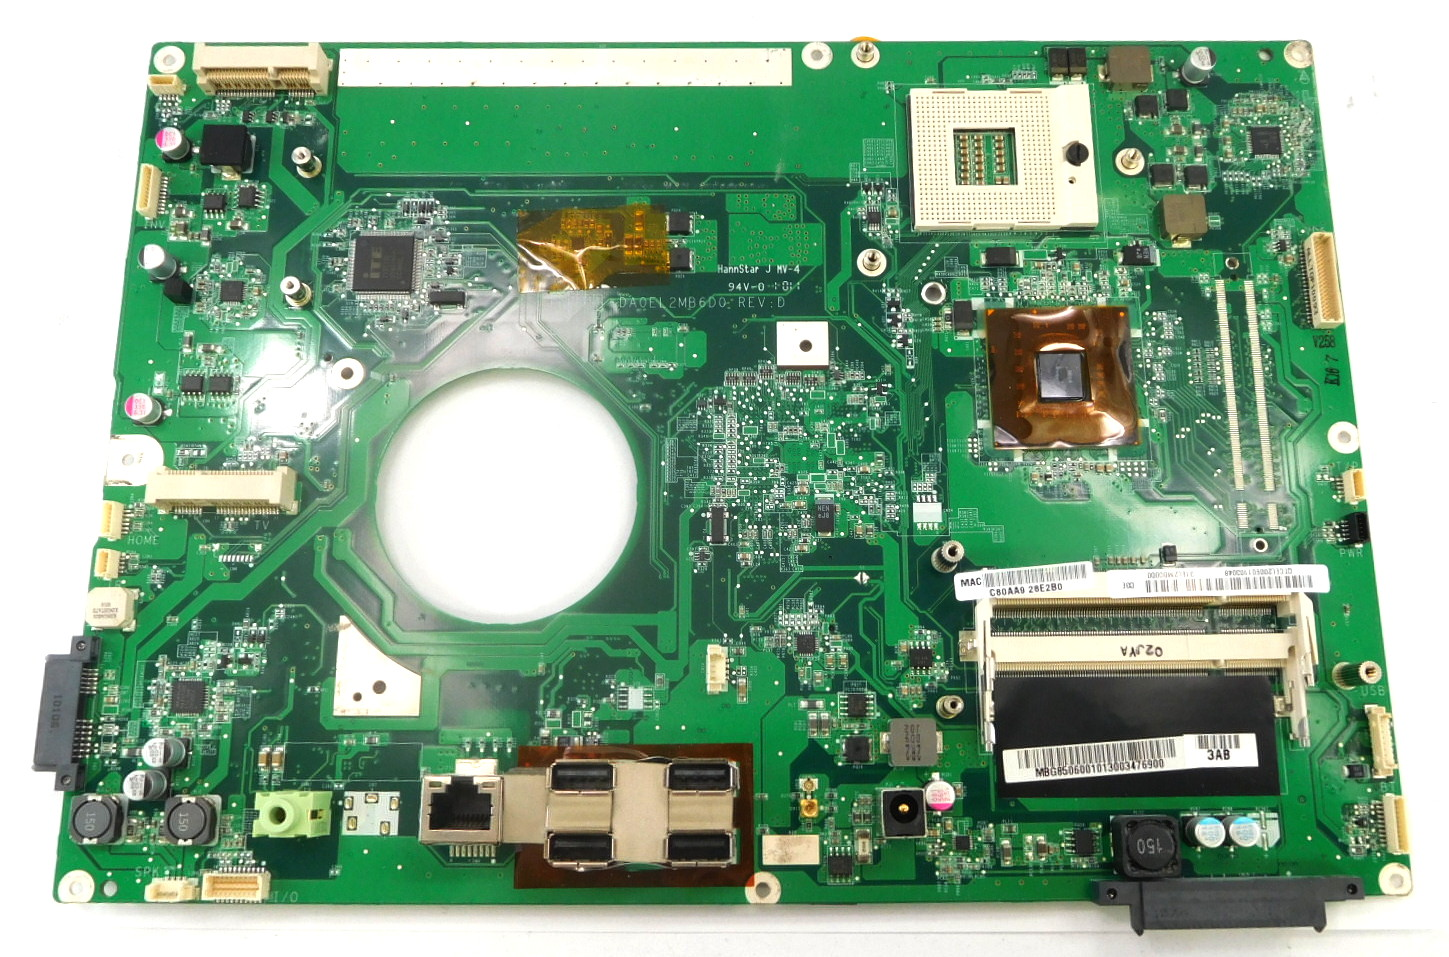 MB.G8506.001 Acer/Packard Bell All In One PC Motherboard DA0EL2MB6D0 Rev.D